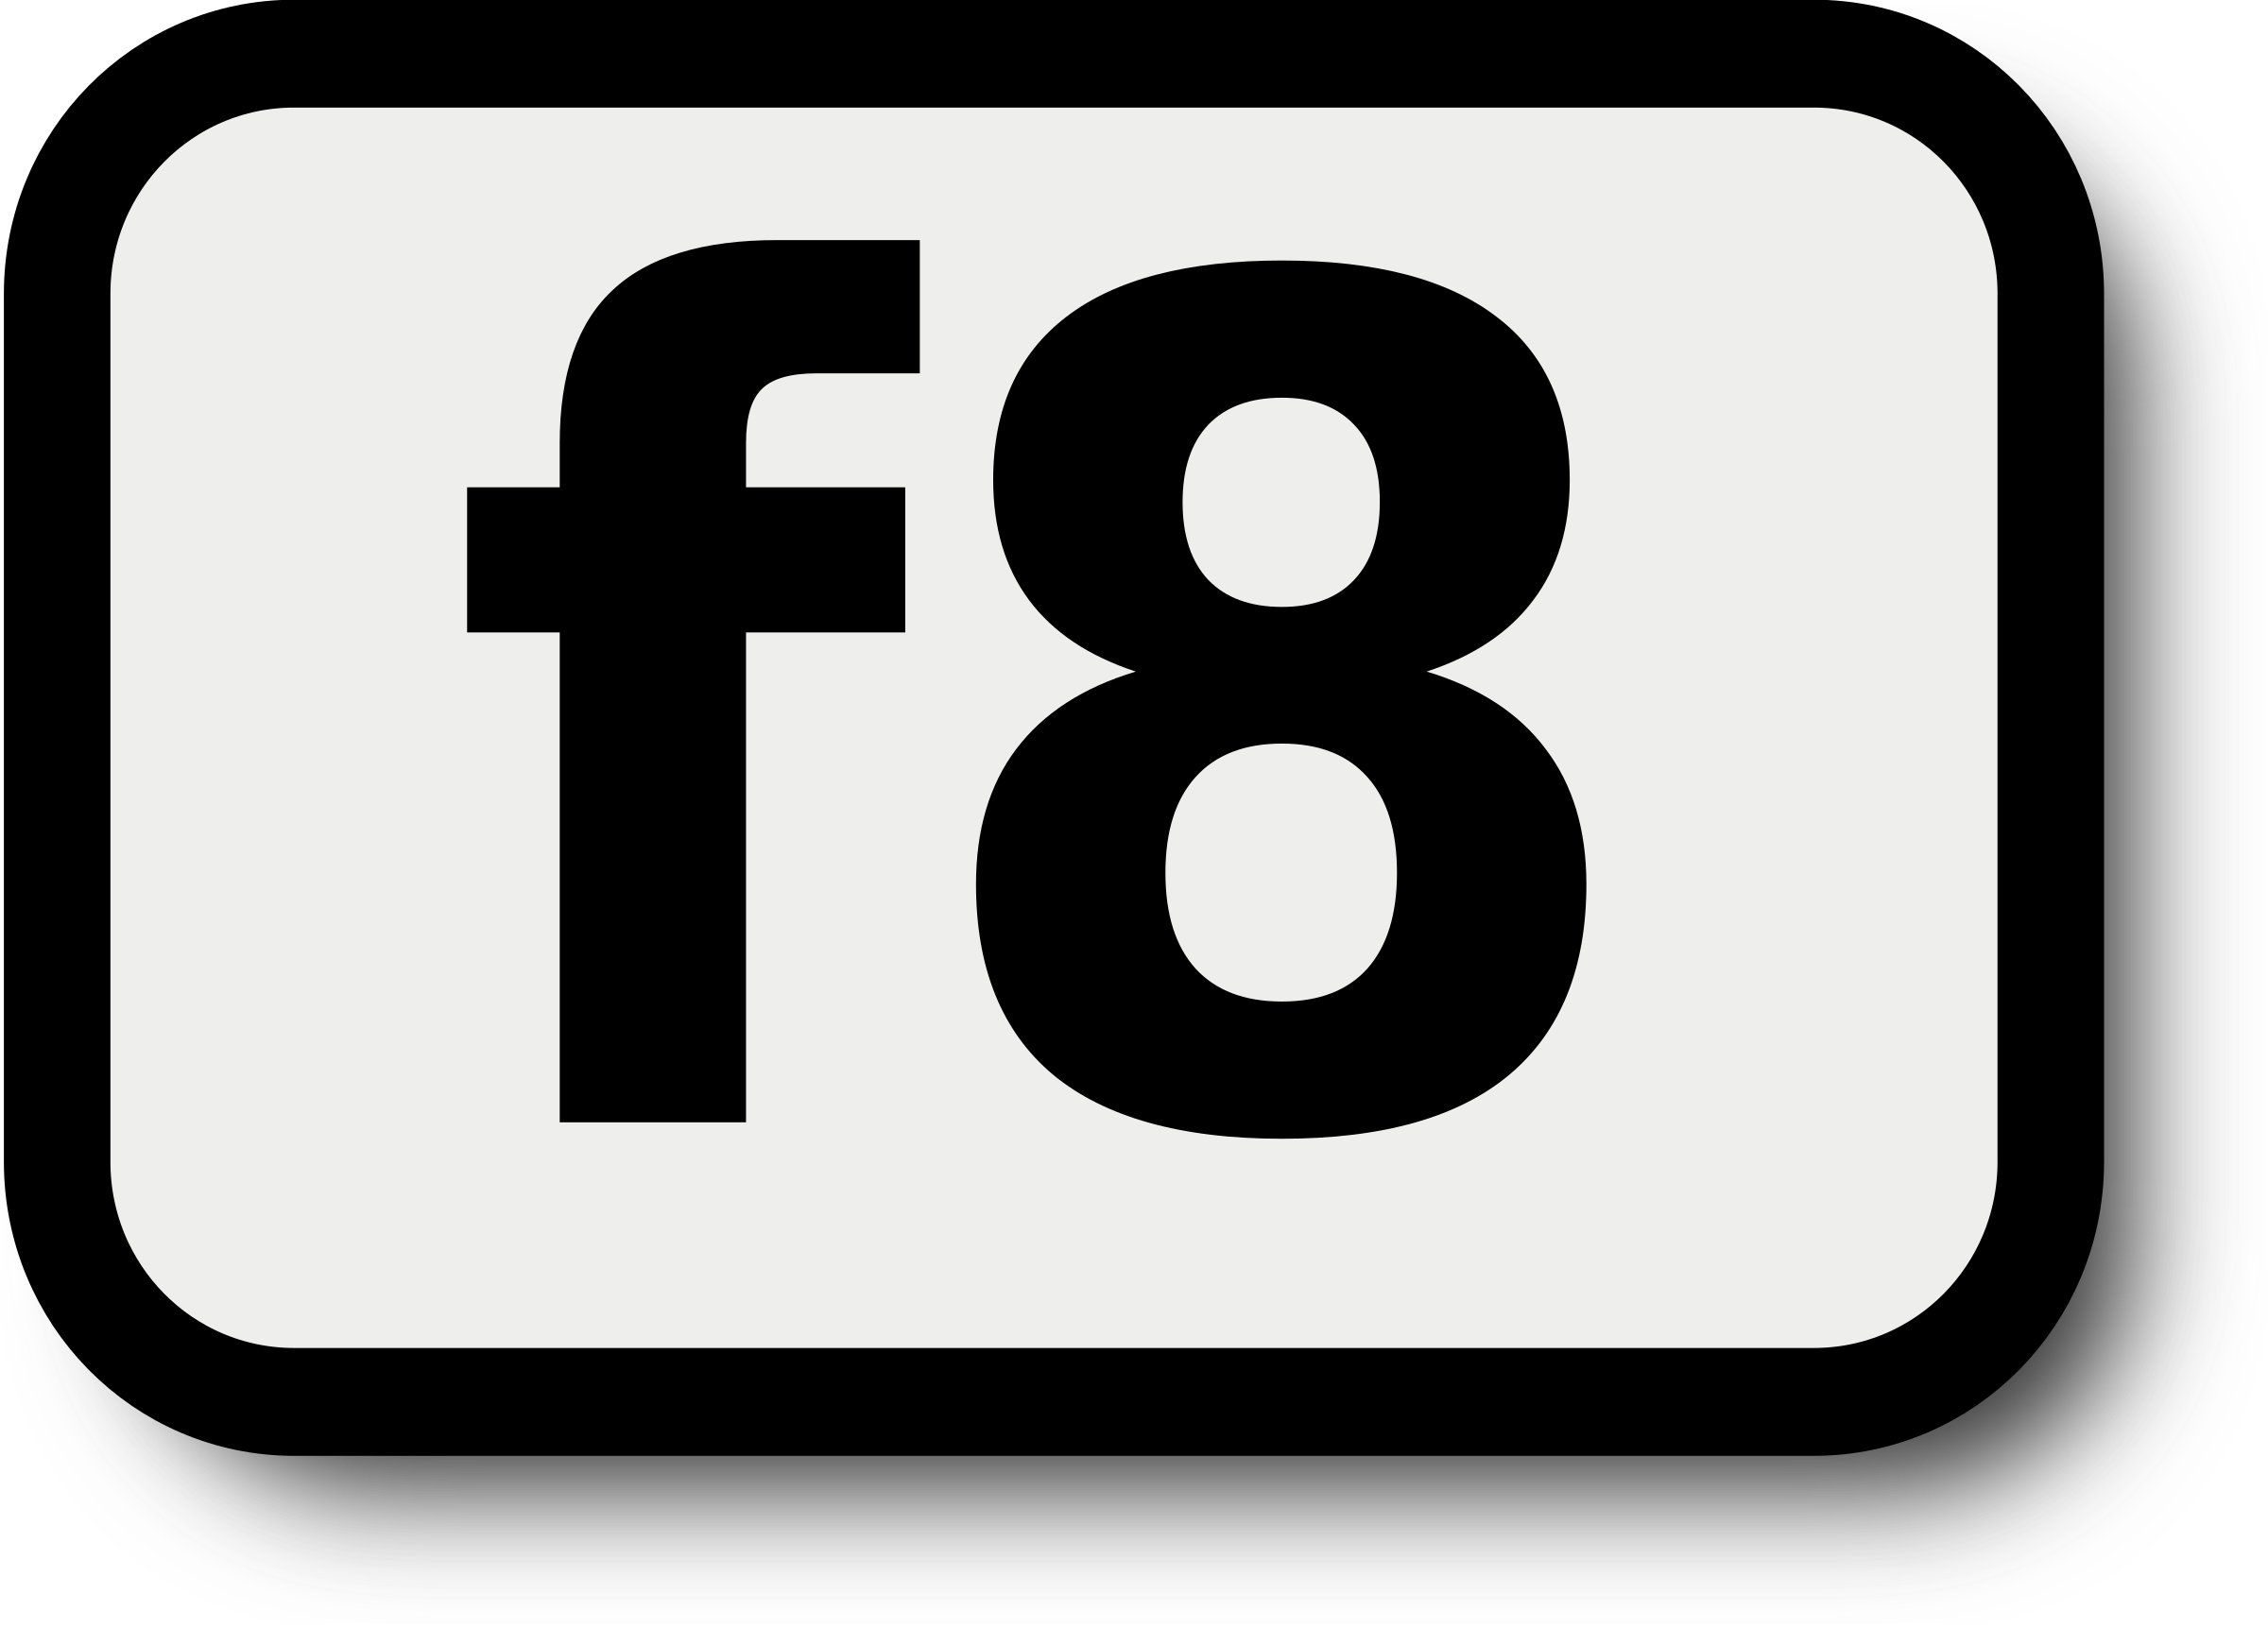 f8 key by Khanke